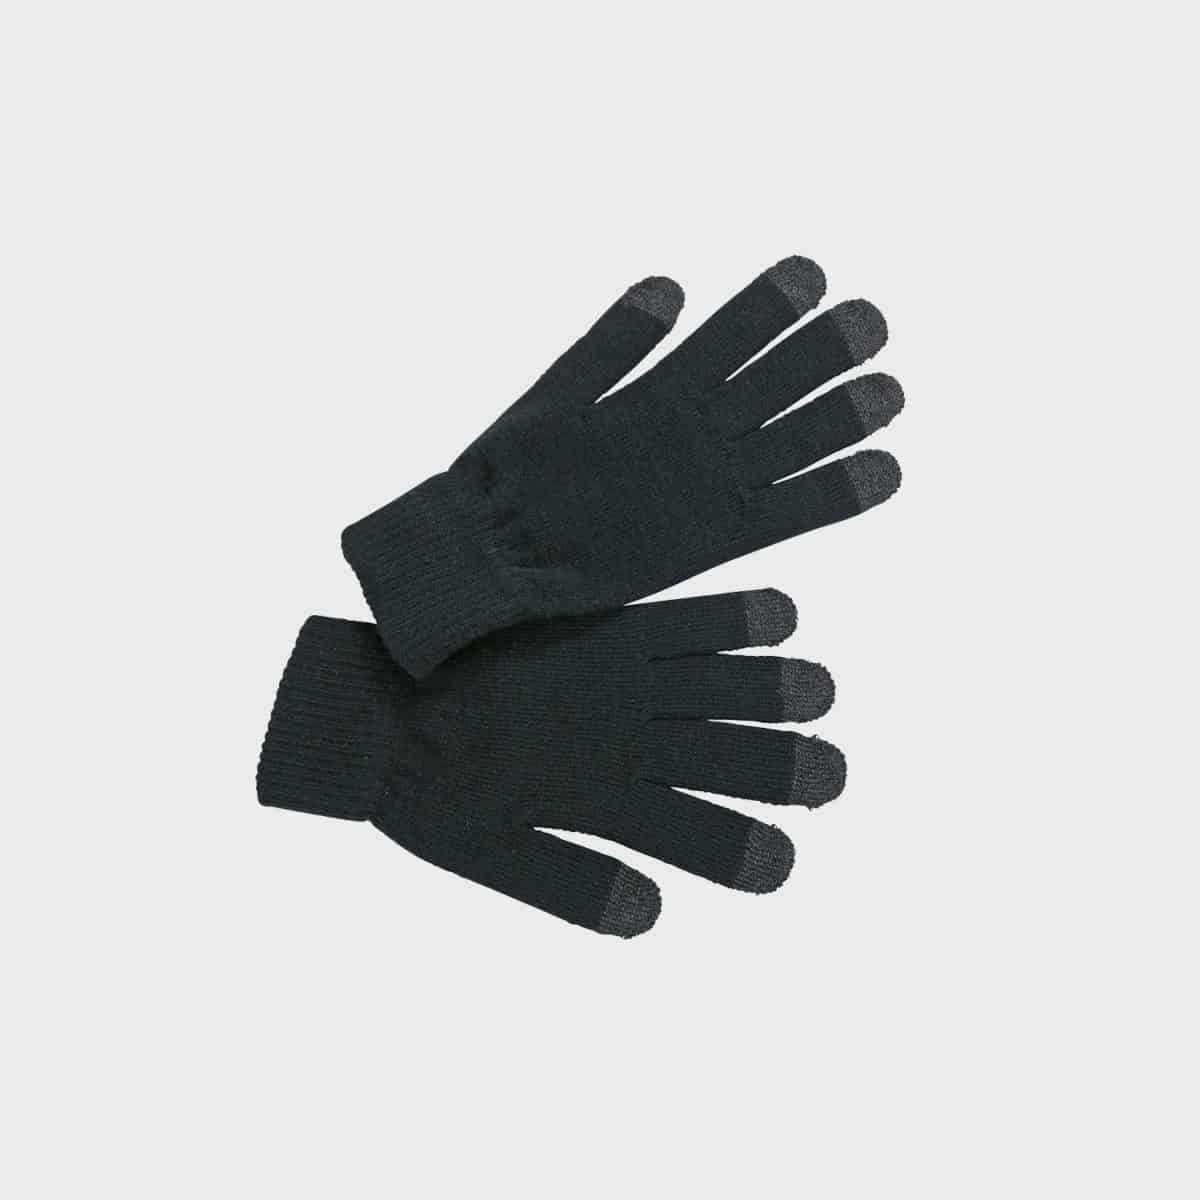 touch-screen-strick-handschuhe-black-kaufen-besticken_stickmanufaktur